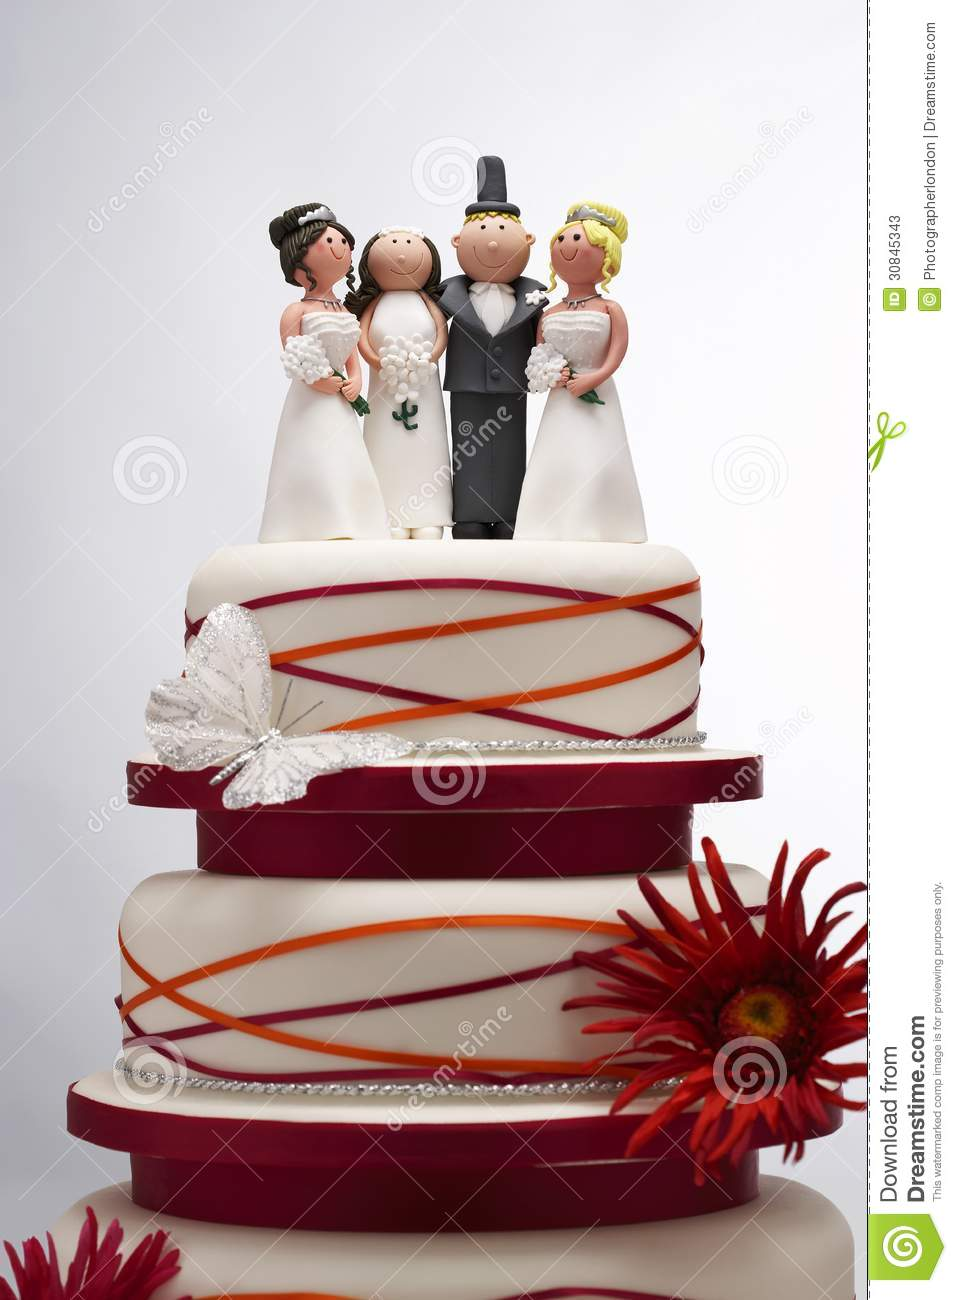 Wedding Cake With Funny Figurines Stock Image Image